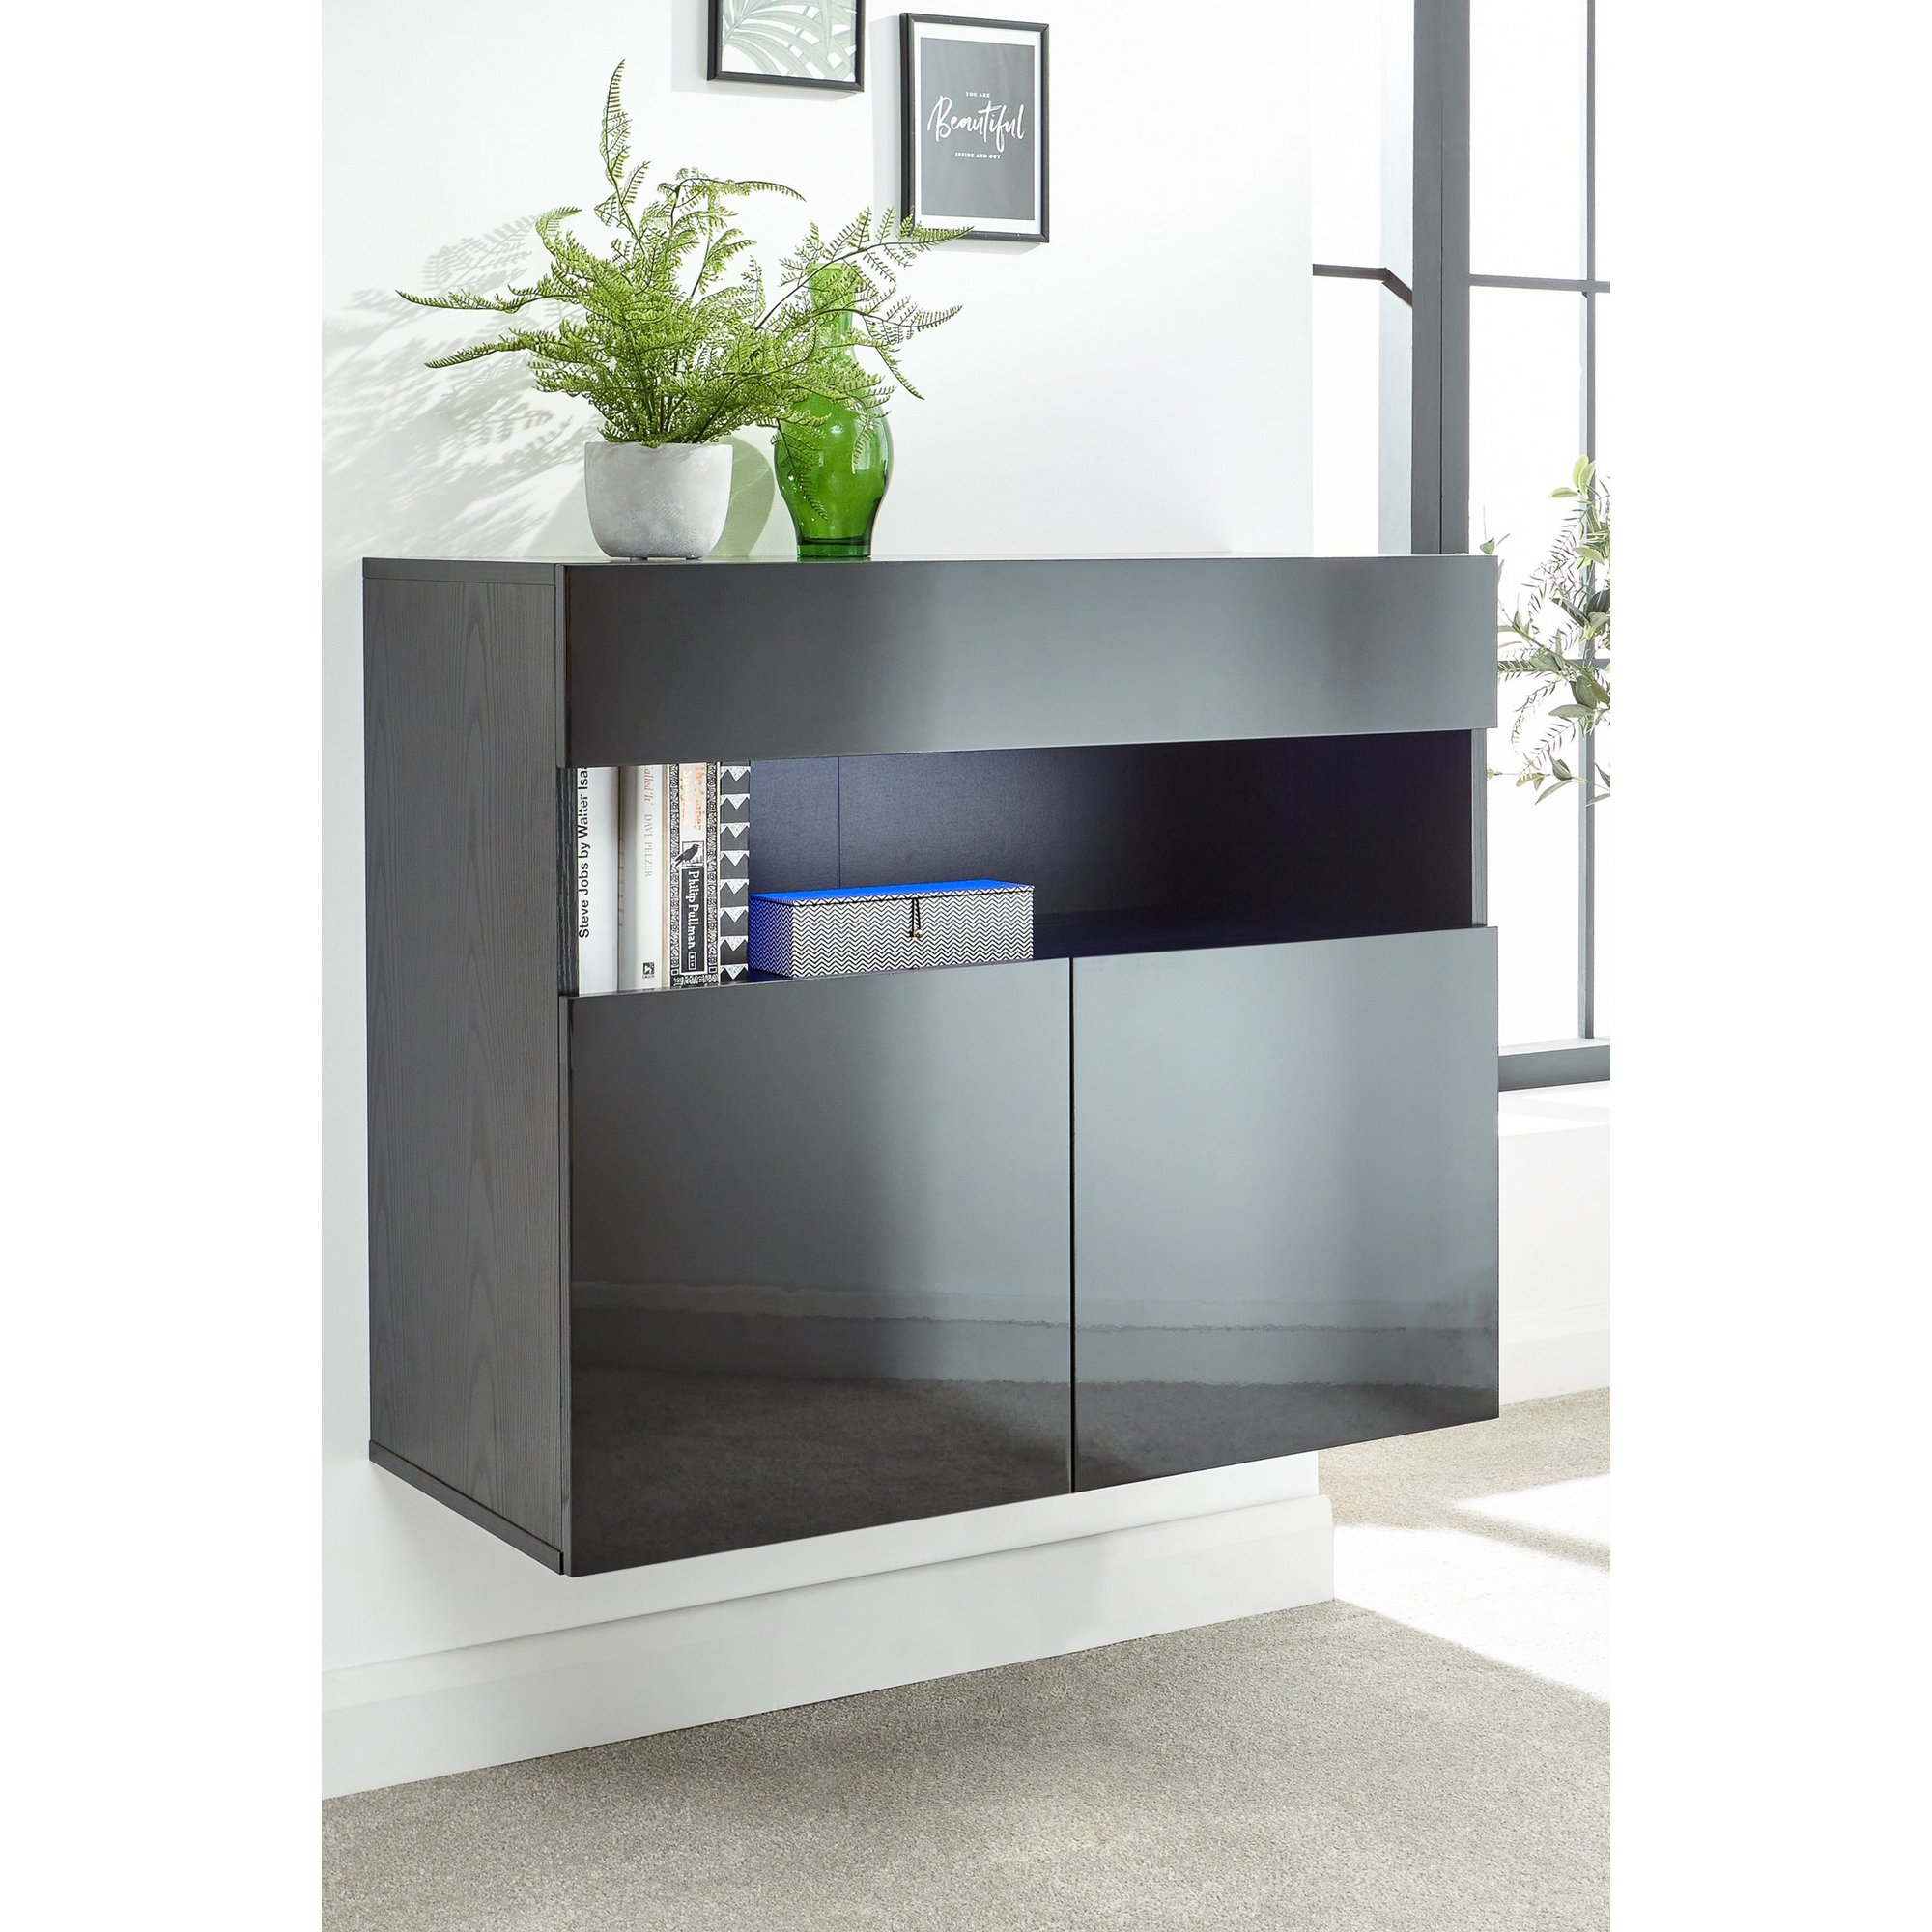 Image of Galicia Wall Mounted Sideboard with LED Lights